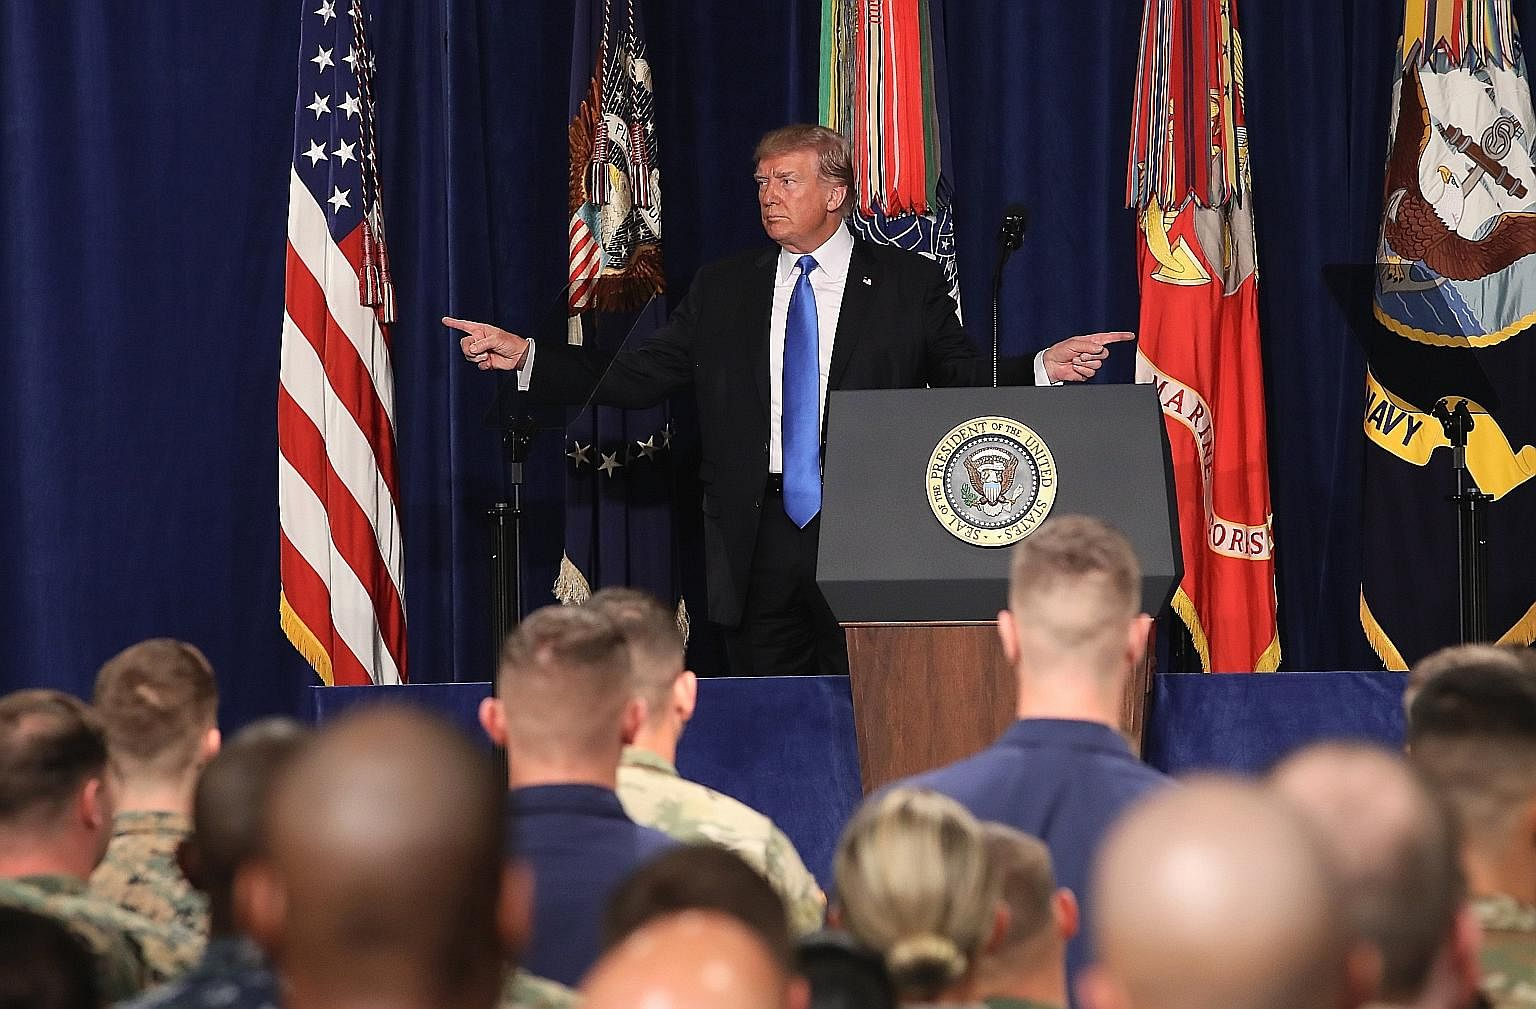 US President Donald Trump before delivering remarks on his country's military involvement in Afghanistan at the Fort Myer base, in Virginia, on Monday. The US is expected to send about 4,000 troops to join the roughly 8,400 in Afghanistan to be